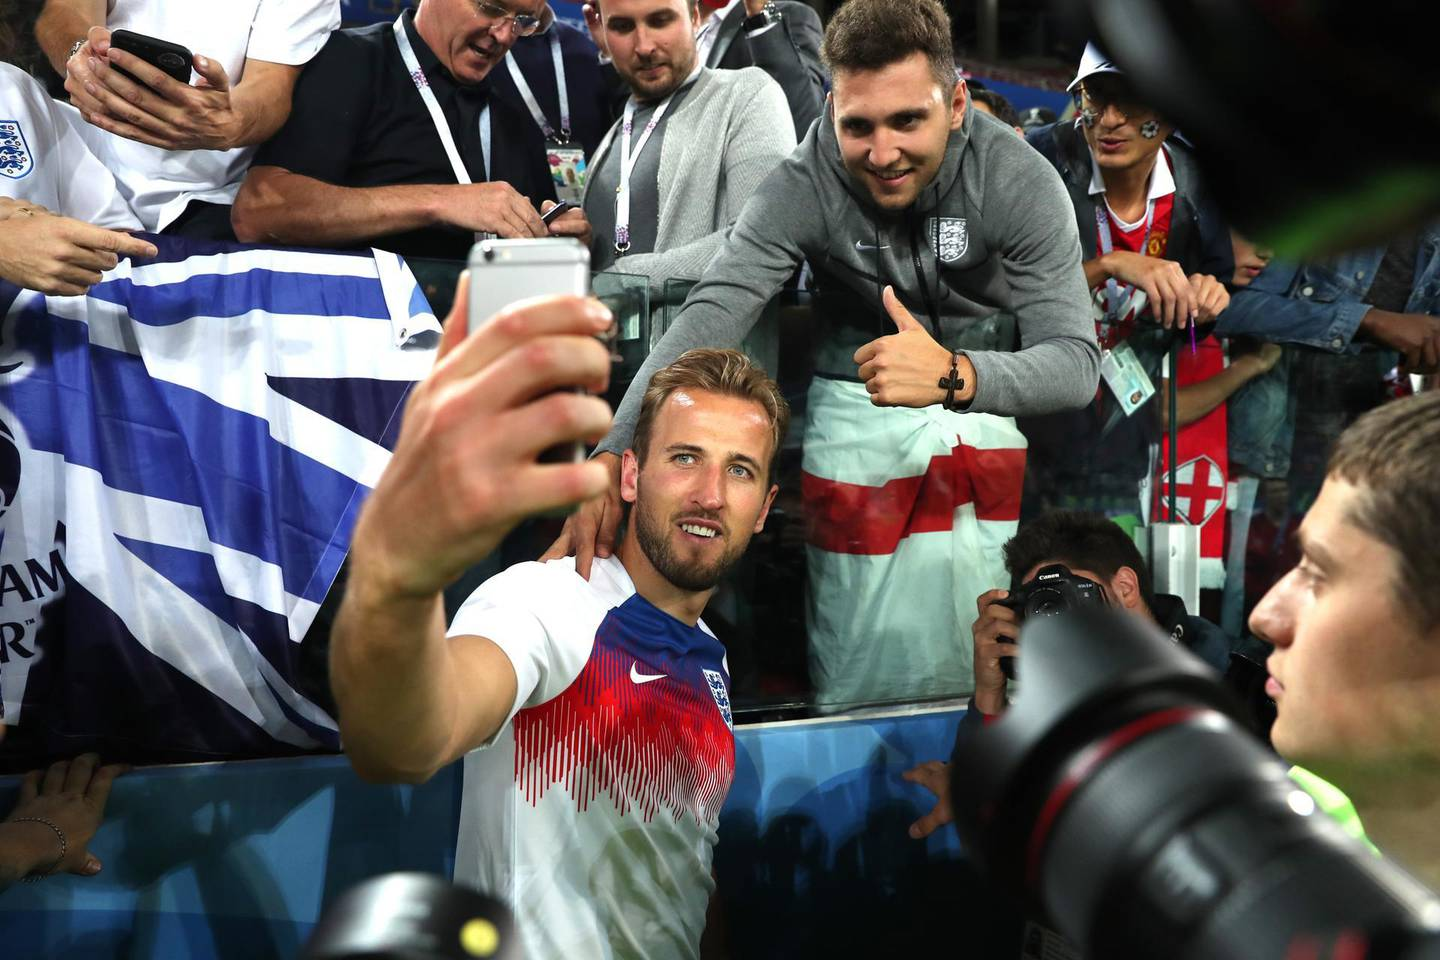 MOSCOW, RUSSIA - JULY 03:  Harry Kane of England celebrates victory by taking selfie photogrpahs with fans after the 2018 FIFA World Cup Russia Round of 16 match between Colombia and England at Spartak Stadium on July 3, 2018 in Moscow, Russia.  (Photo by Clive Rose/Getty Images)